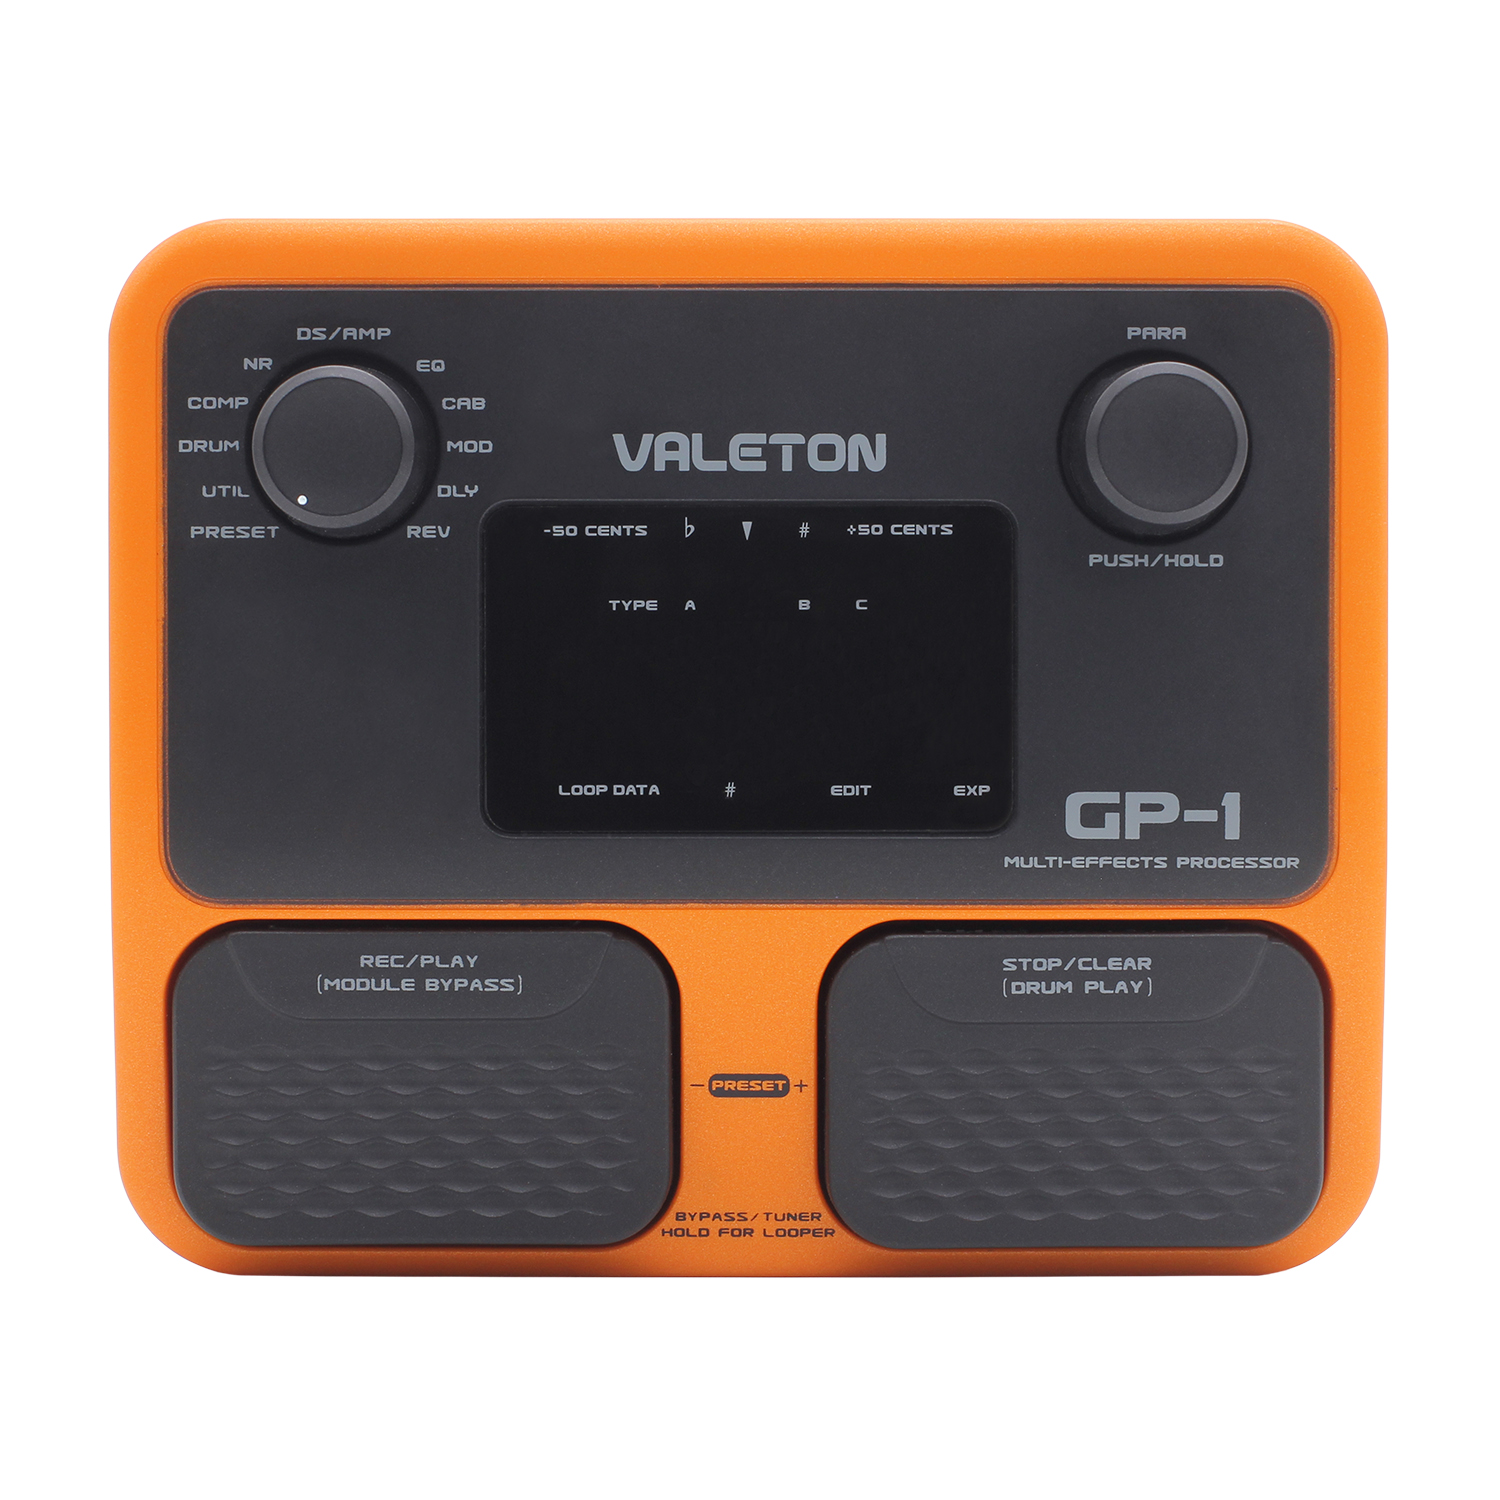 Valeton GP-1 Multi Effects Processor Guitar Effect Pedal 100 Effects, Run 8 Effects Simultaneously